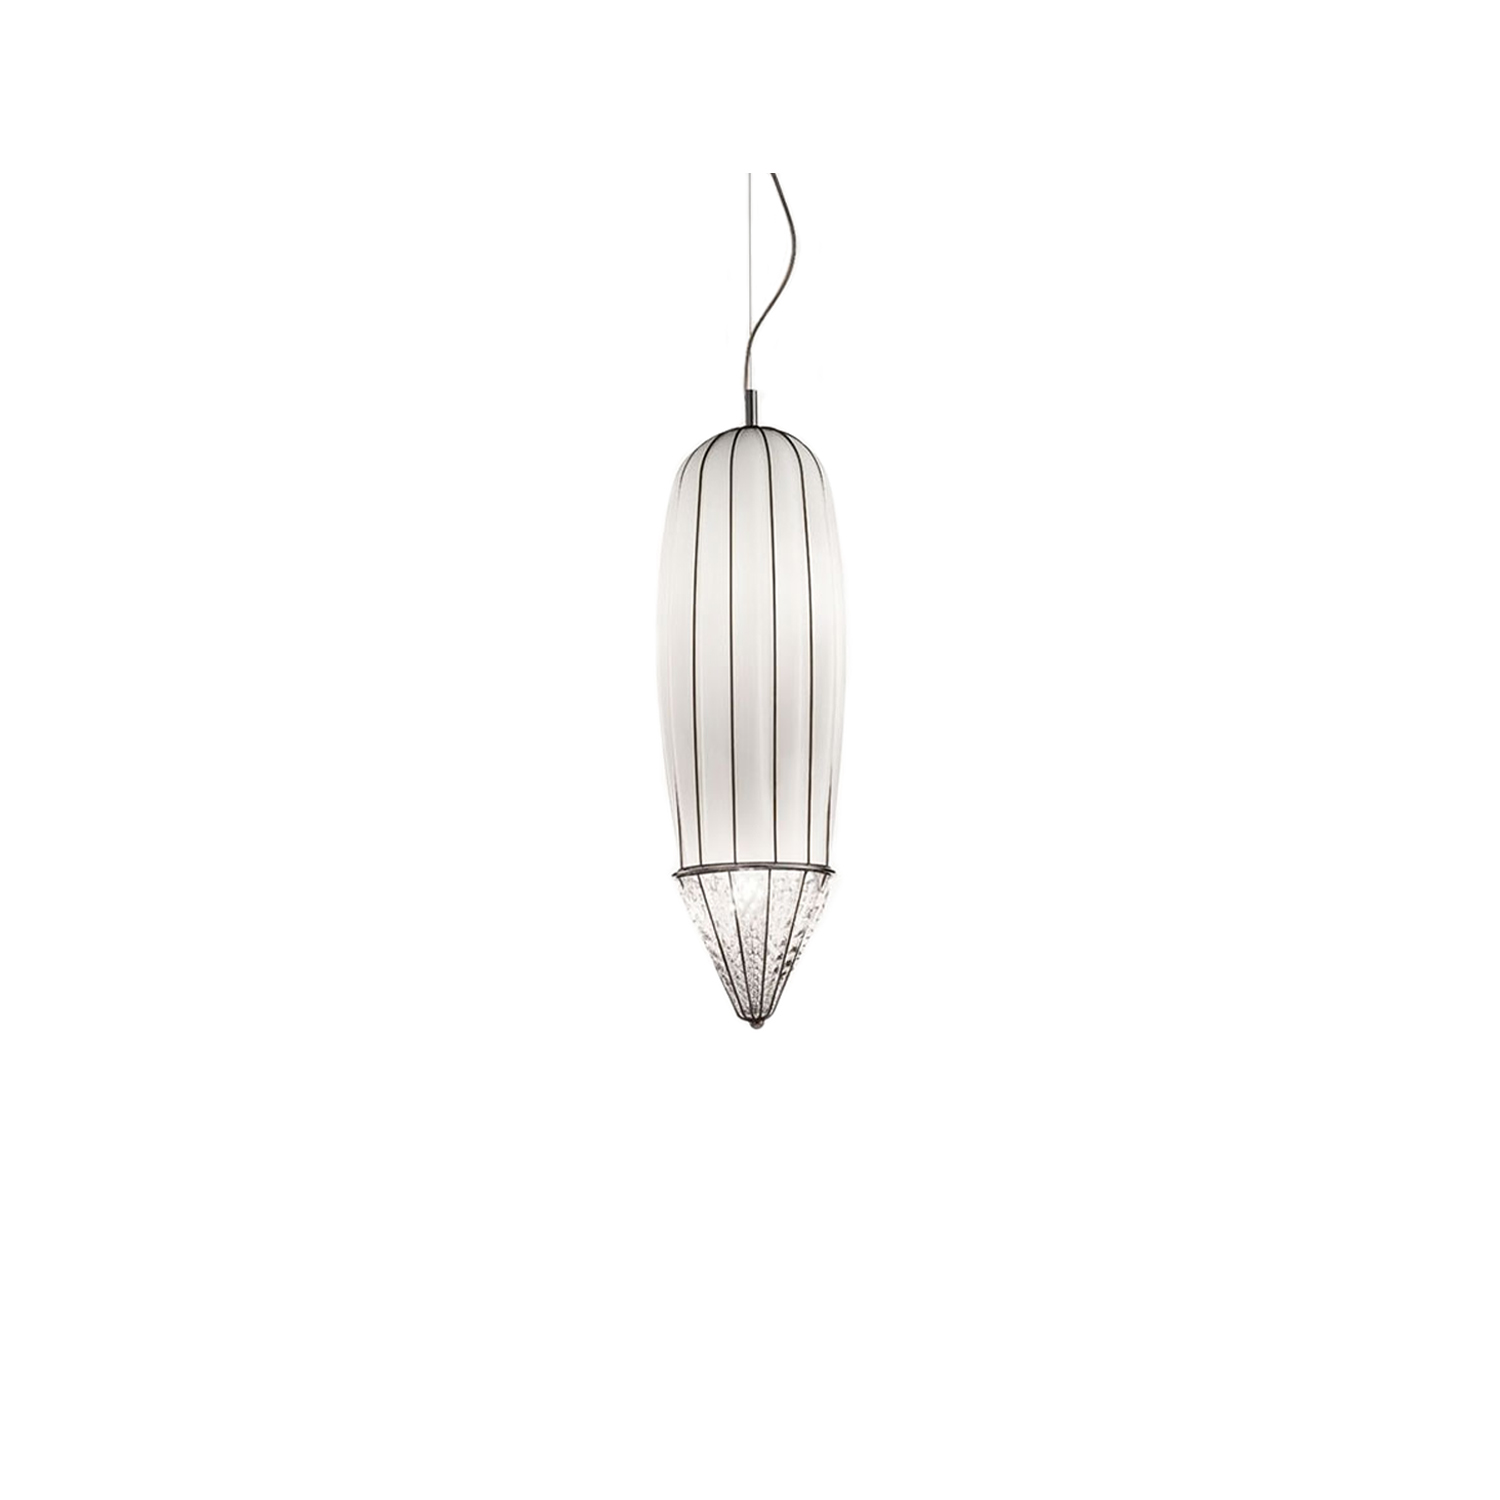 Pencil Pendant Light - The Pencil Pendant Light is, as the name suggests, pencil shaped with a smooth cylinder going towards a point at the end. This pendant light would look elegant in most open spaces and would look perfect hanging in the middle of a spiral staircase. This piece is hand made blown glass with suspension techniques of the old Murano glass masters. This light comes in three finishes: Smooth Milk White, Amber Stacked and Smoke Strike 250V Input. 4X E14 max 40W ~ IP20 Bulbs  | Matter of Stuff